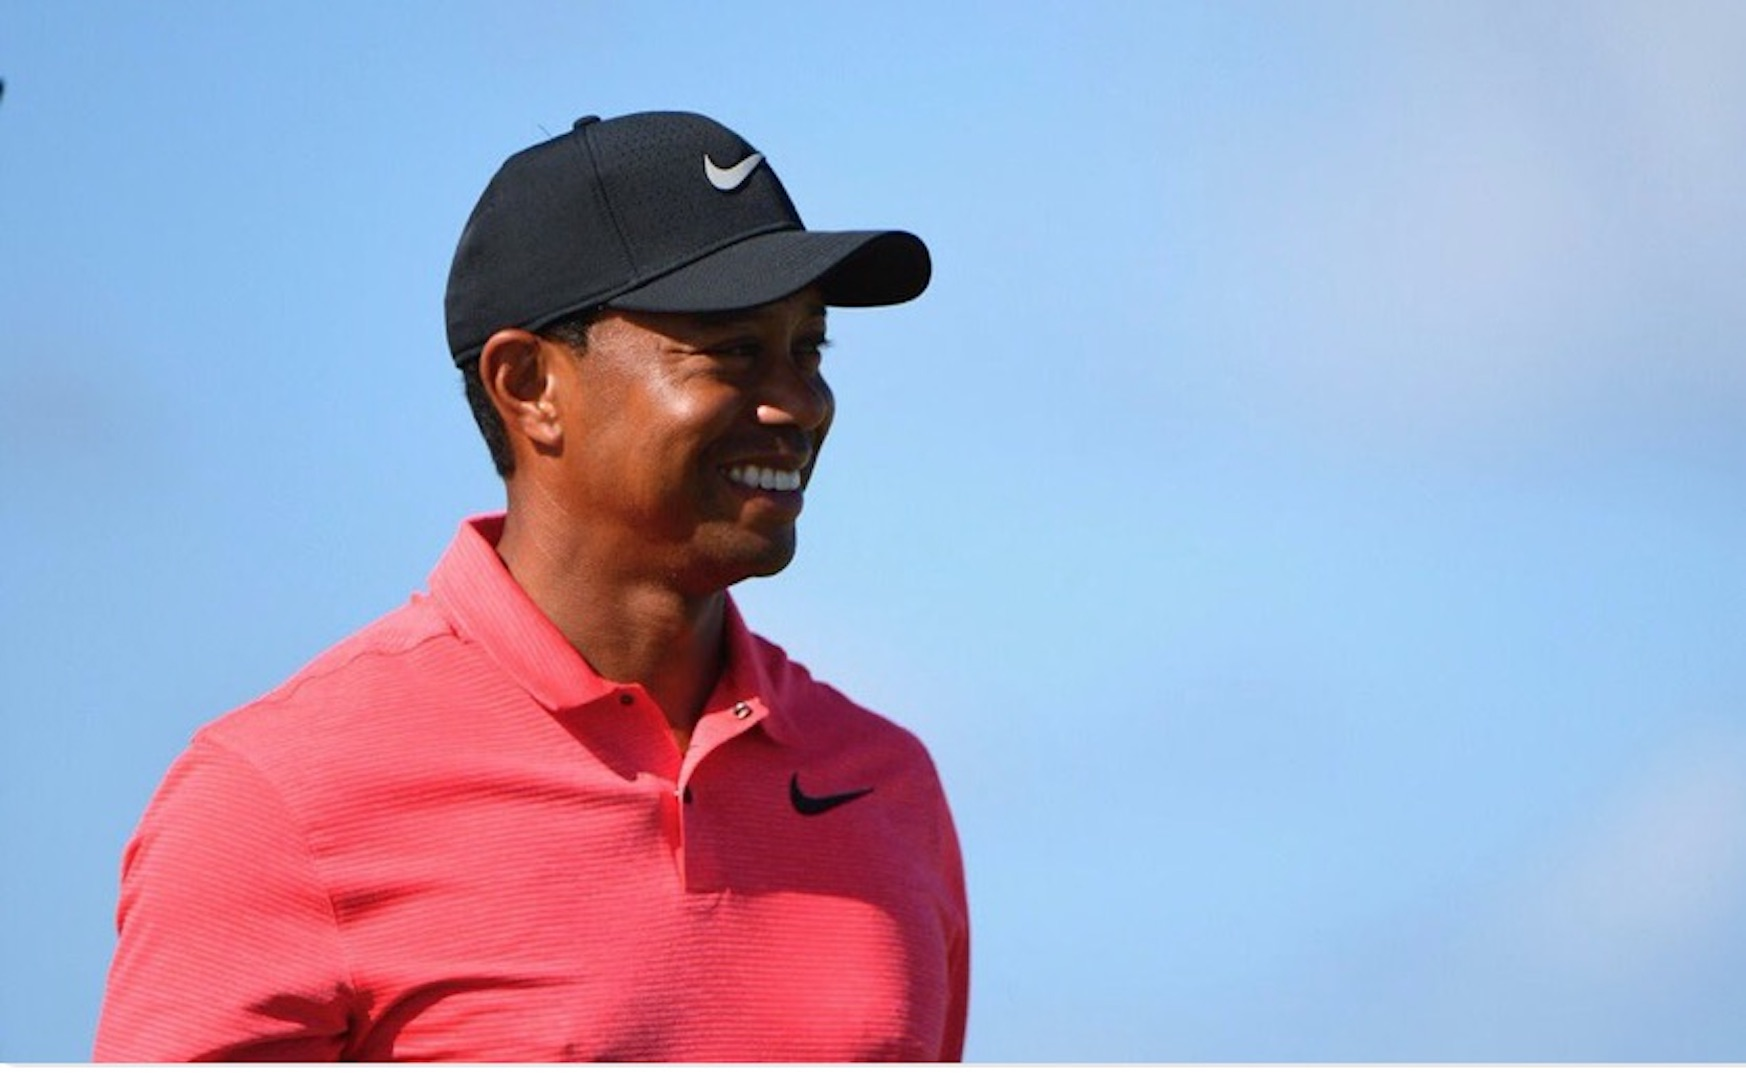 Hole-by-hole analysis of Tiger Woods' final round